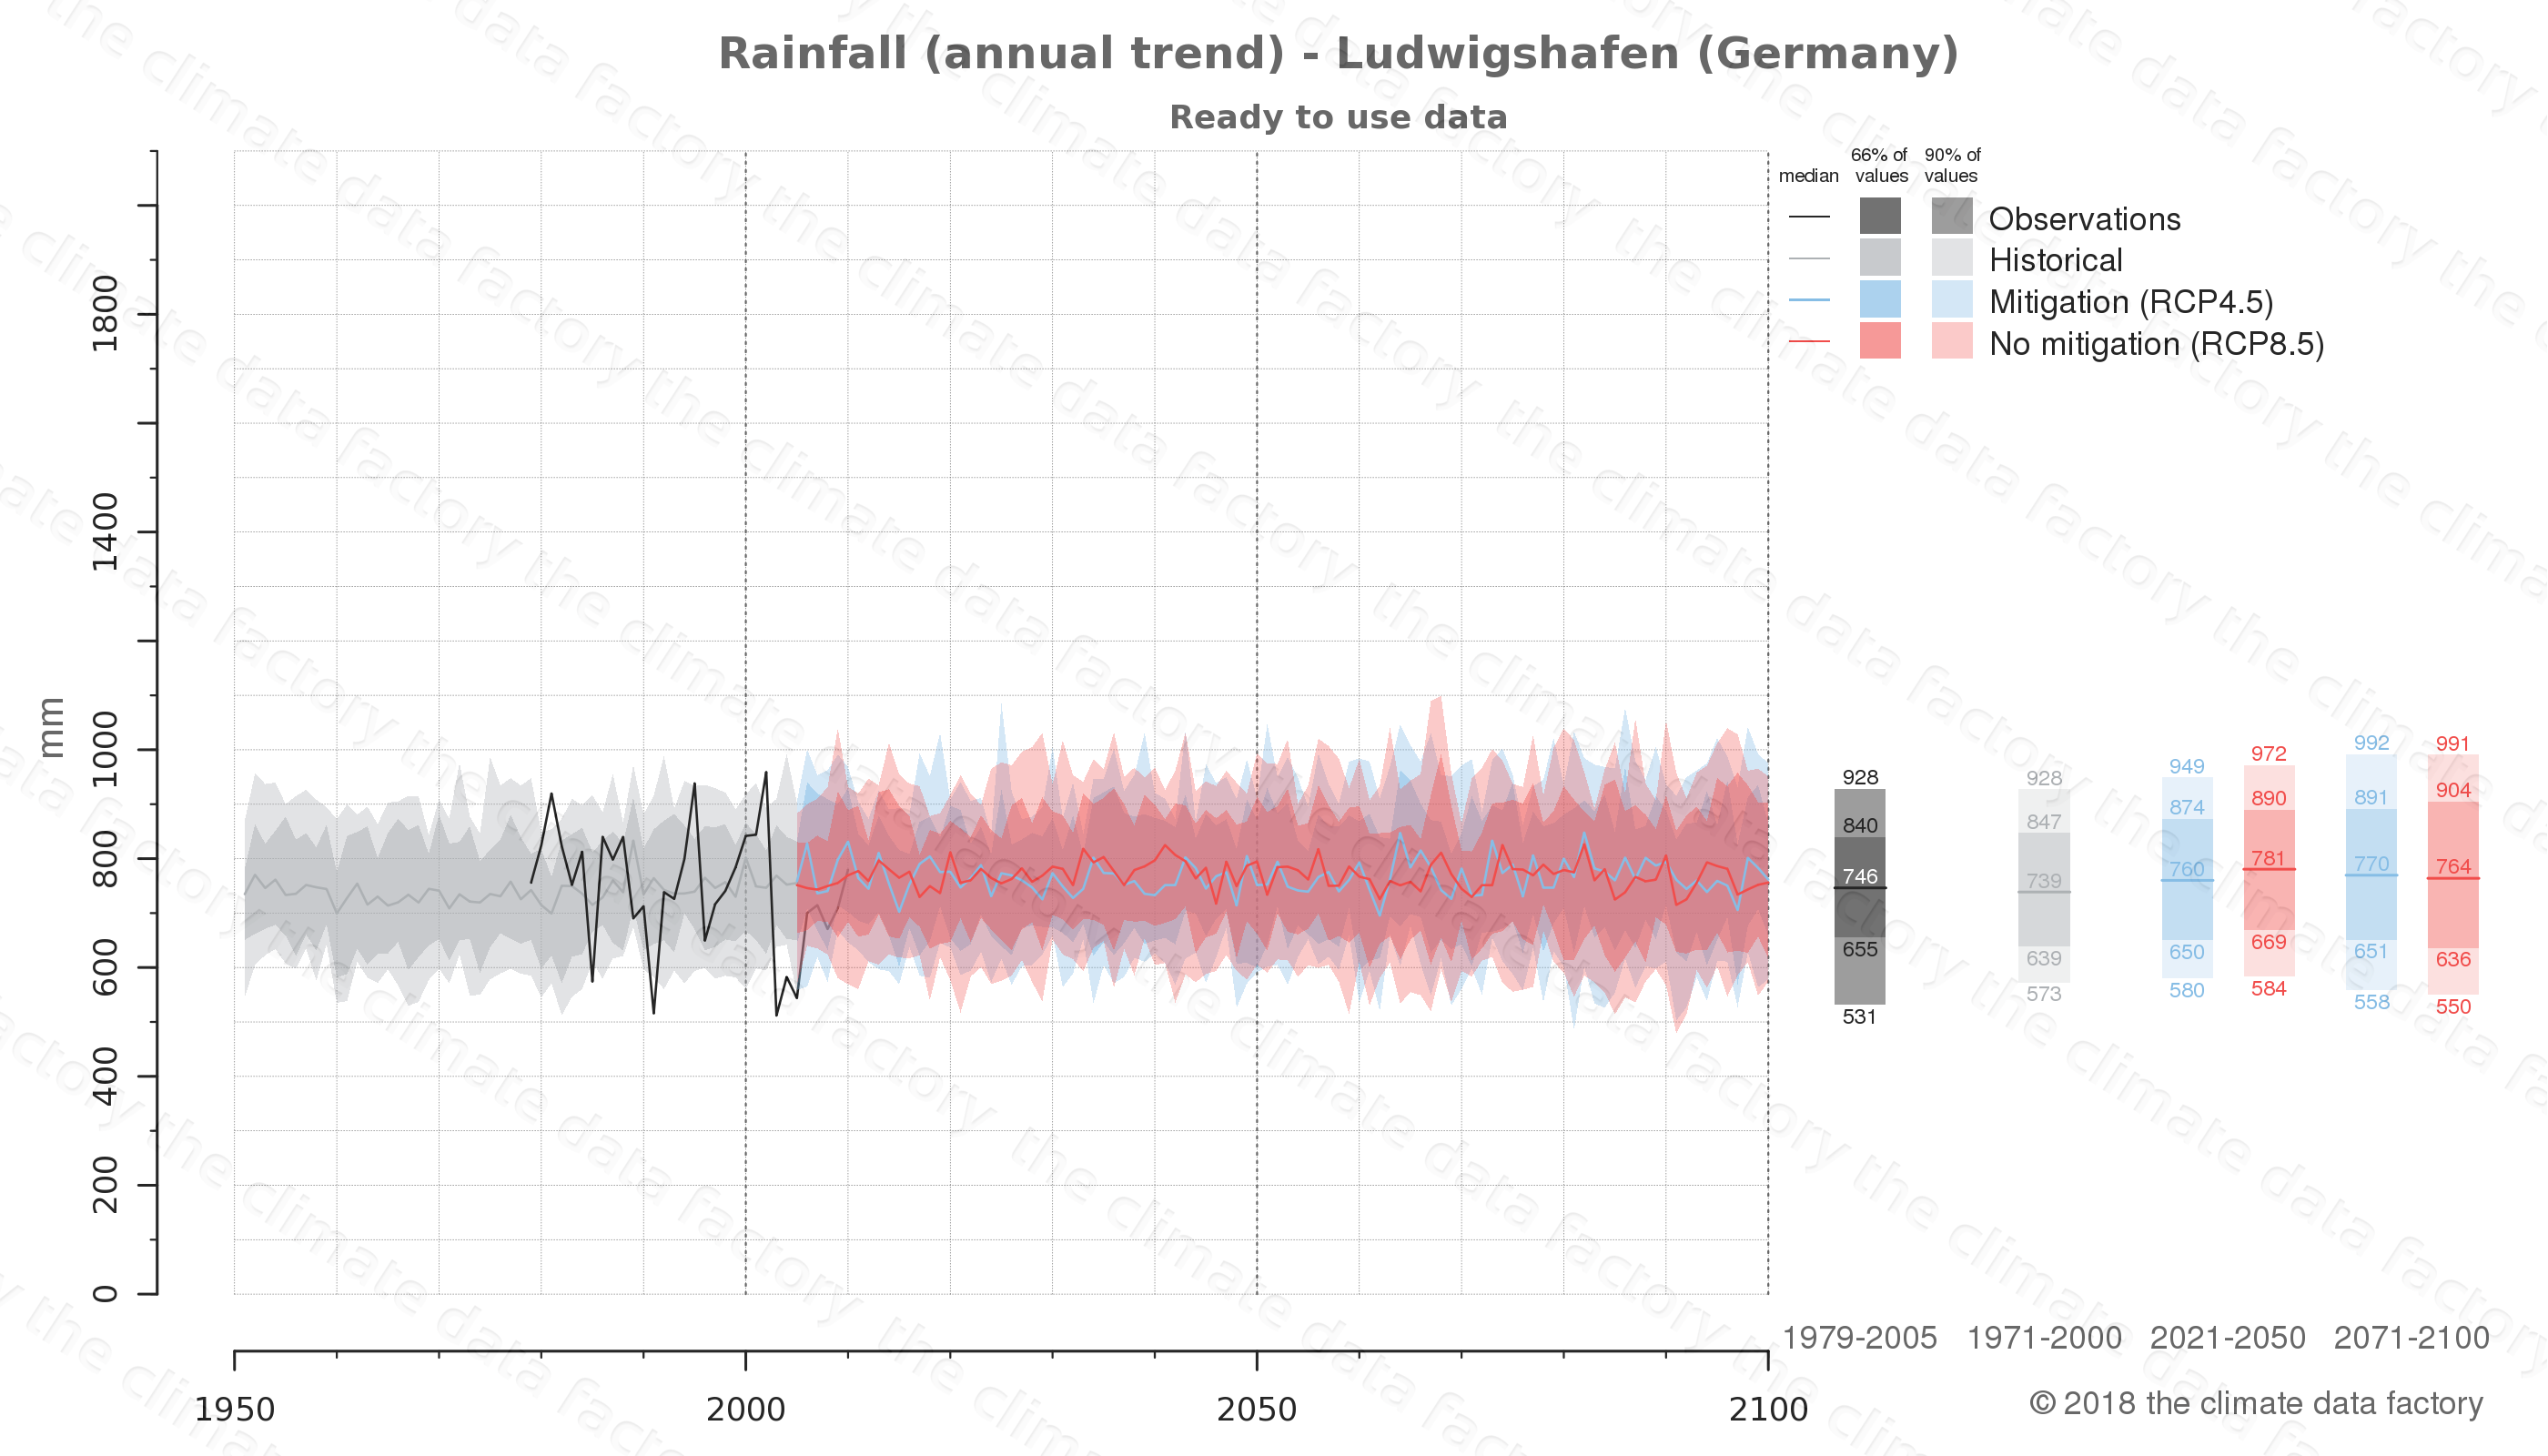 climate change data policy adaptation climate graph city data rainfall ludwigshafen germany